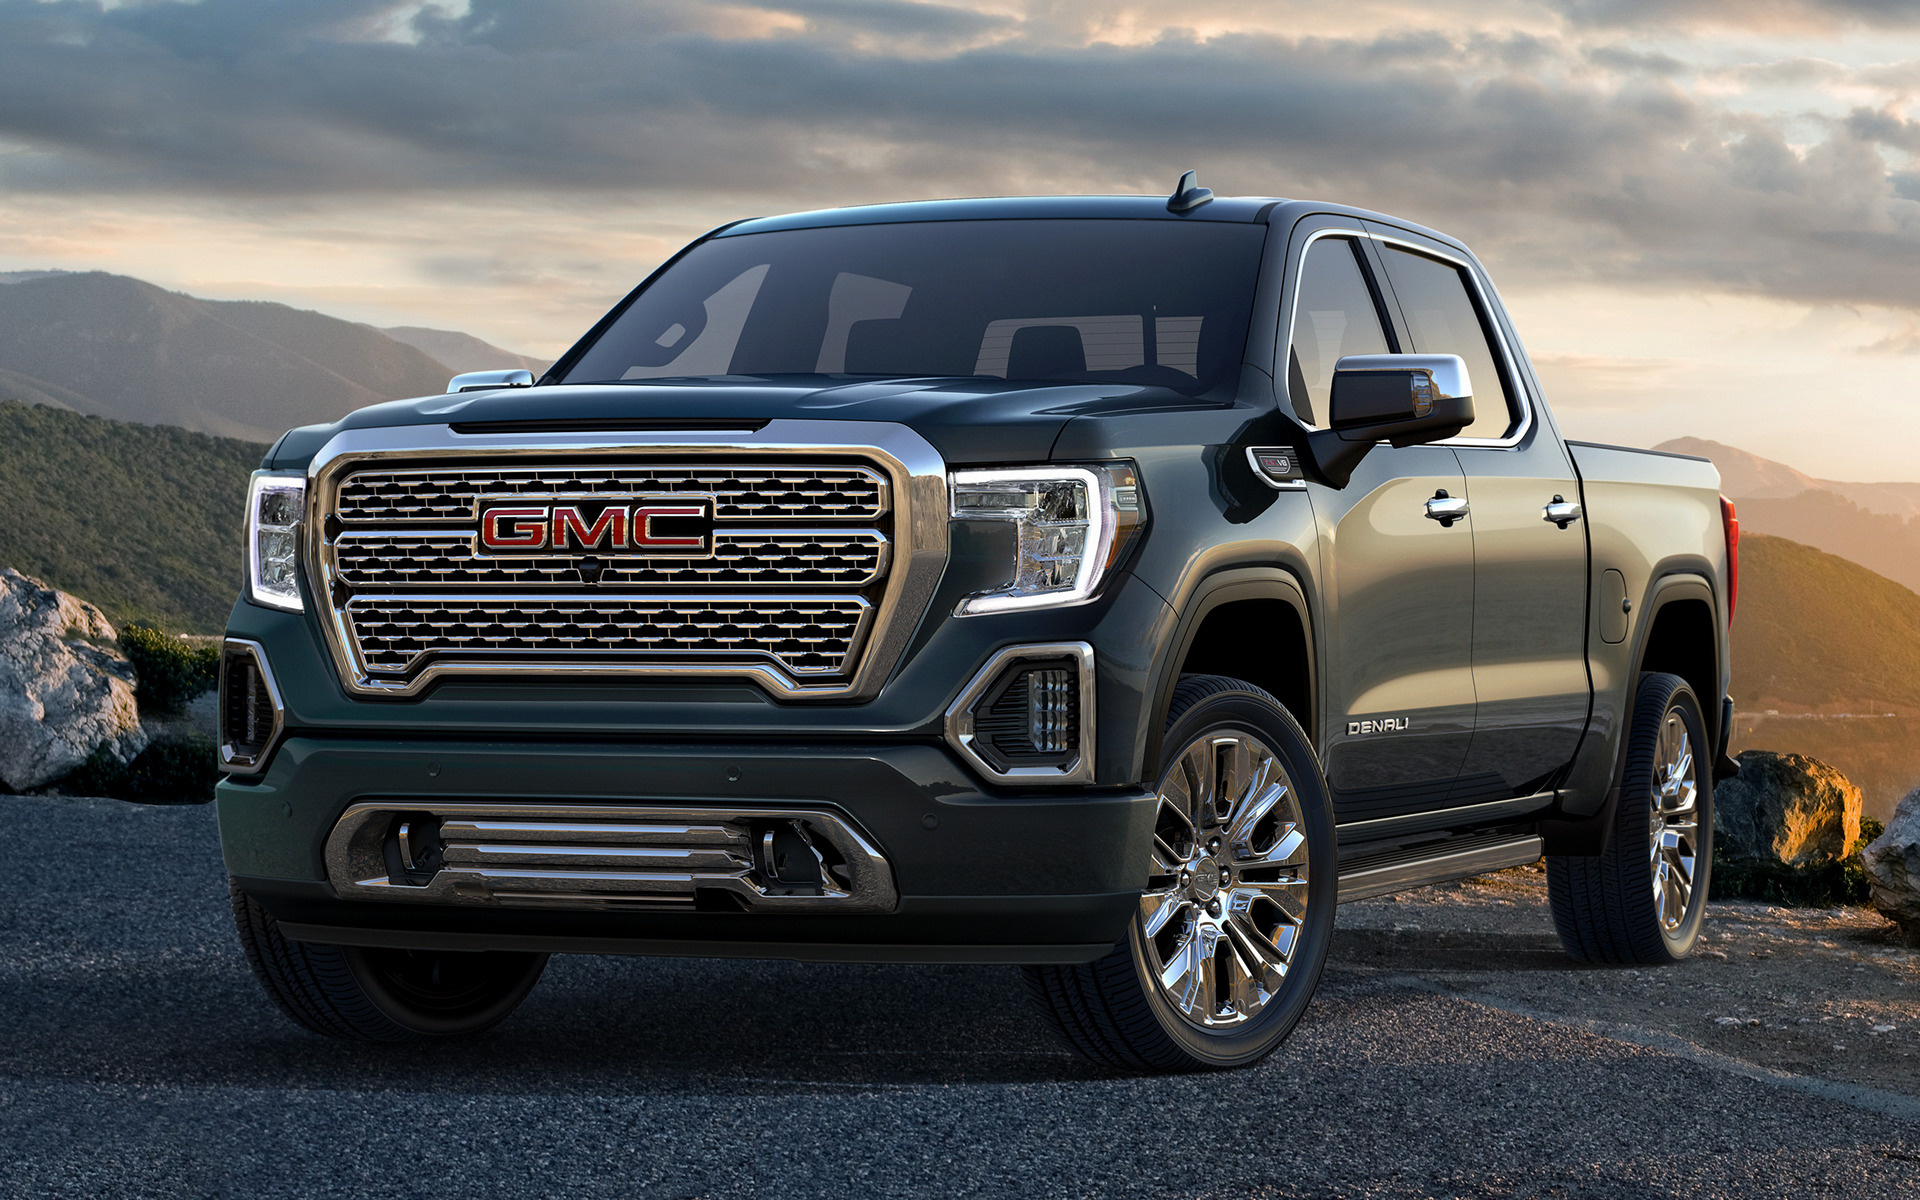 2016 Gmc Denali Hd >> GMC Sierra Denali Crew Cab (2019) Wallpapers and HD Images - Car Pixel